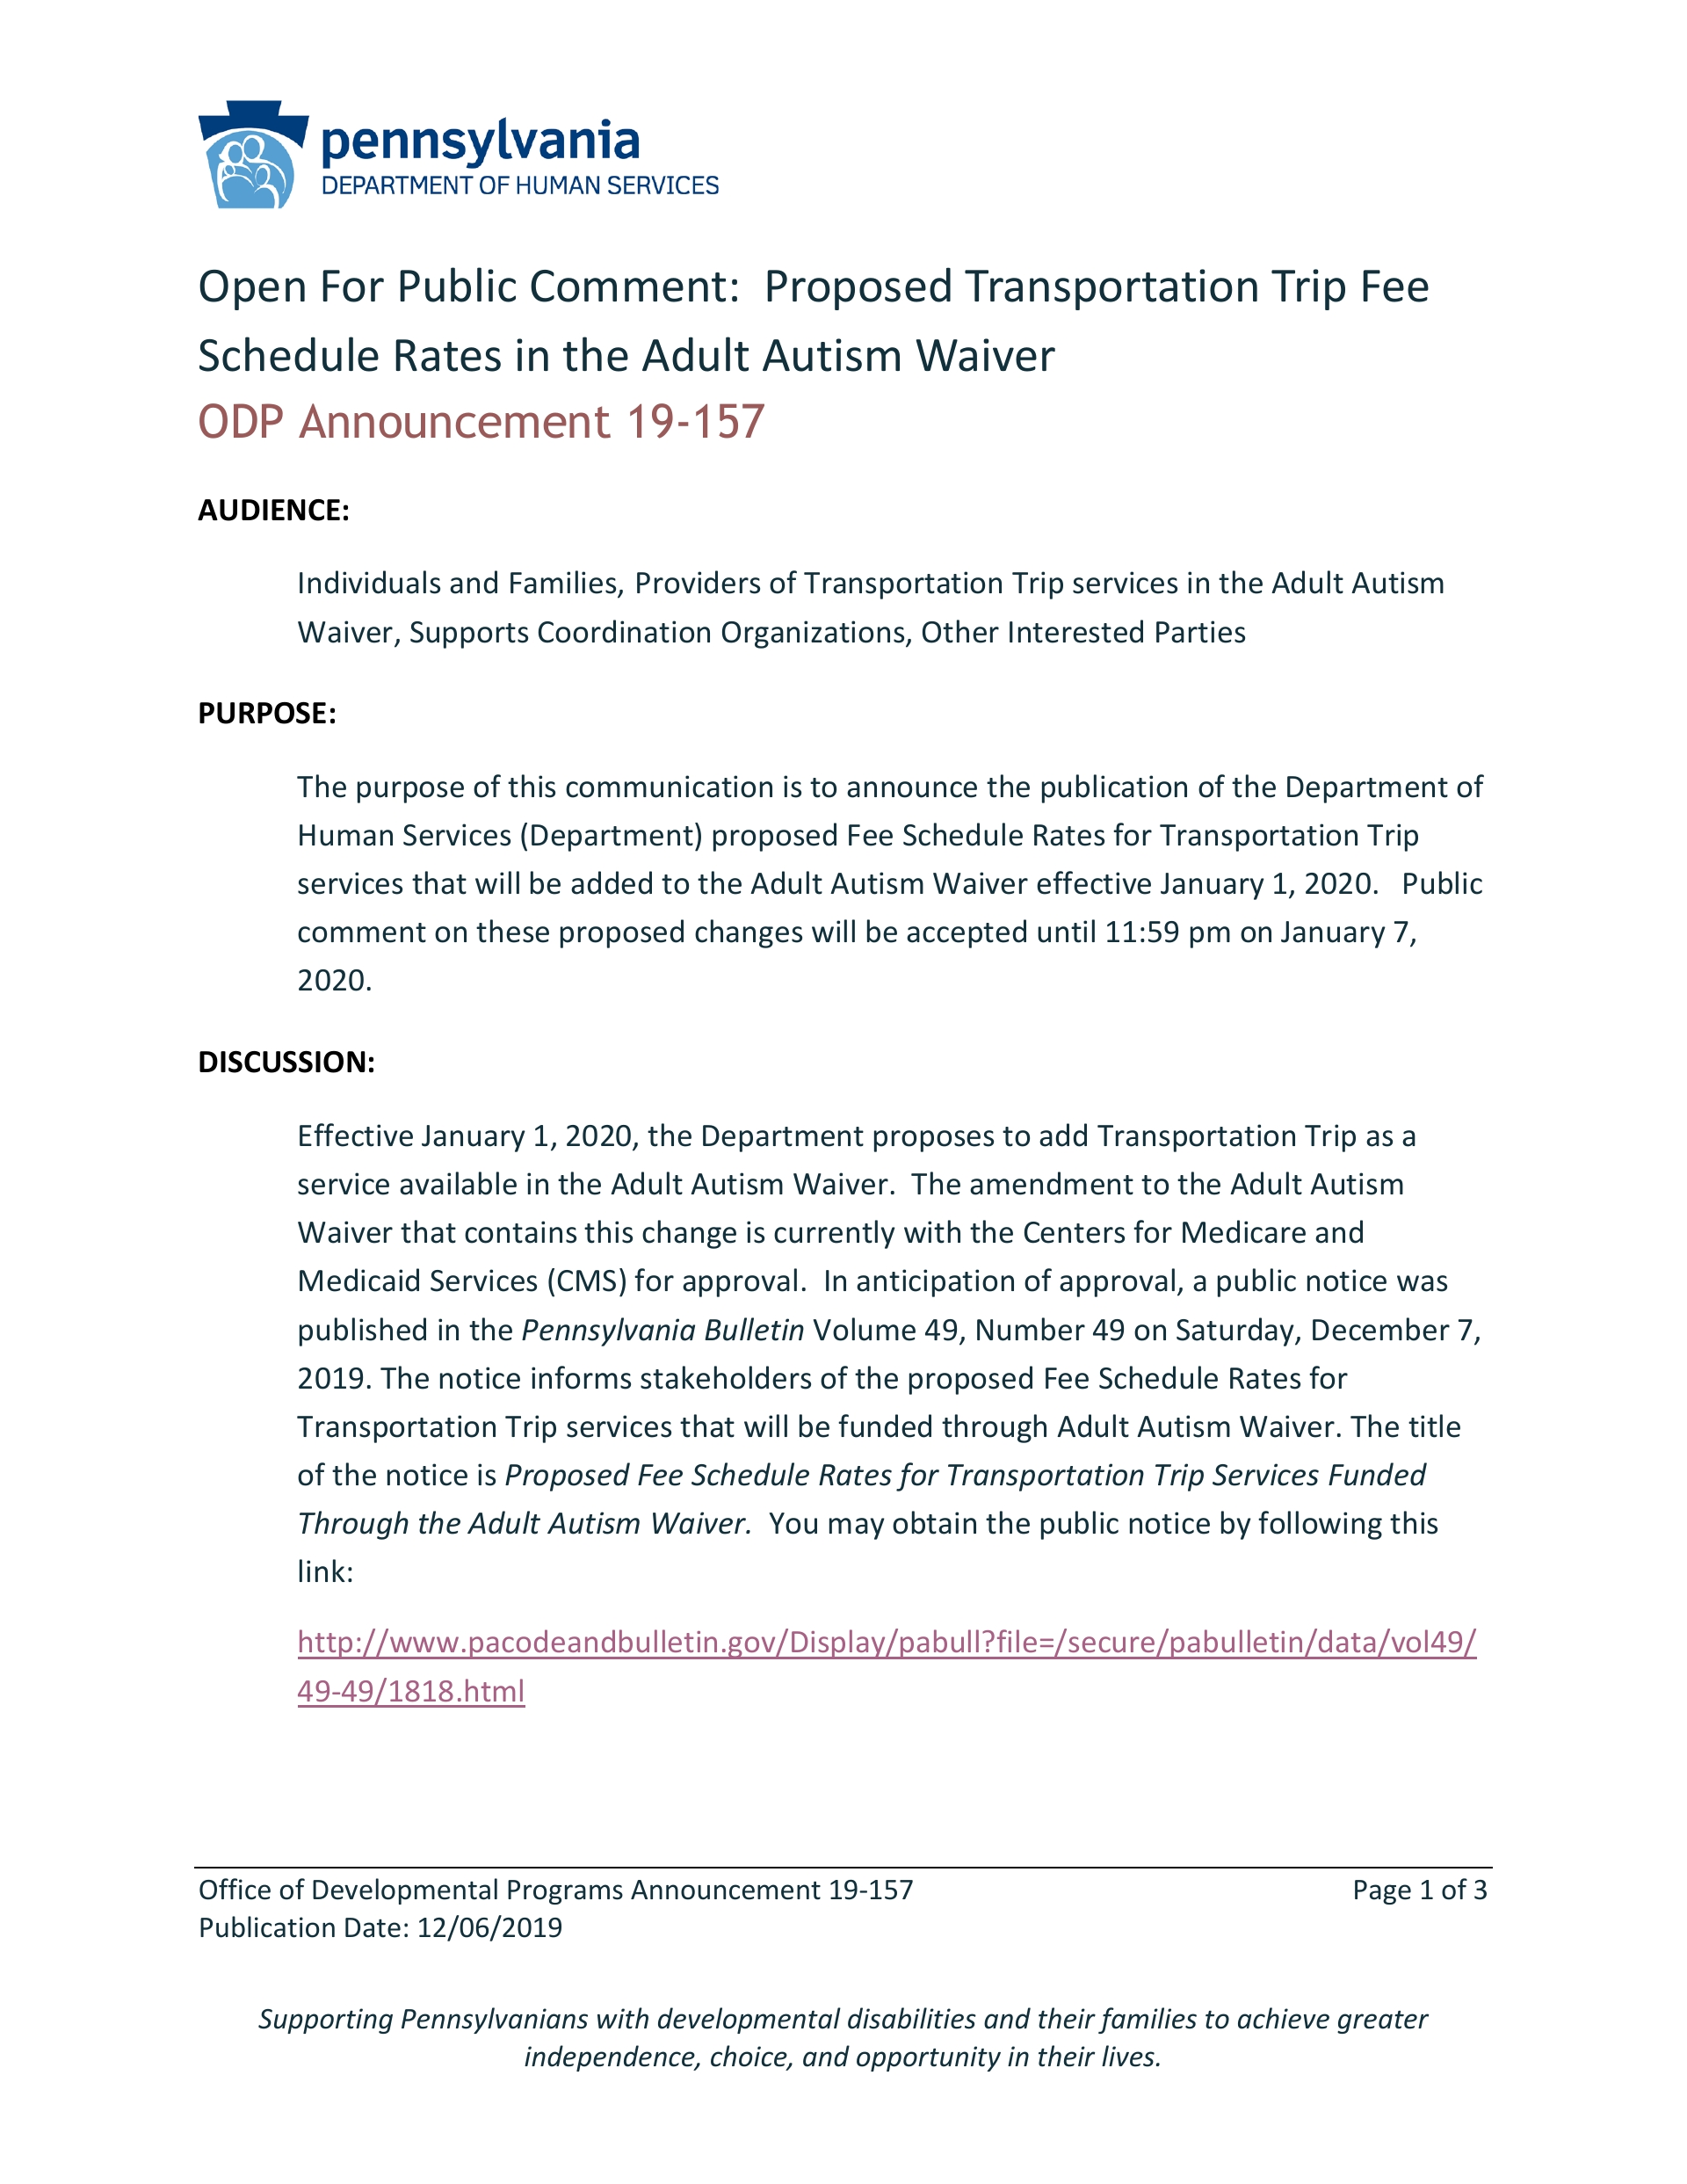 Open For Public Comment: Proposed Transportation Trip Fee Schedule Rates in the Adult Autism Waiver